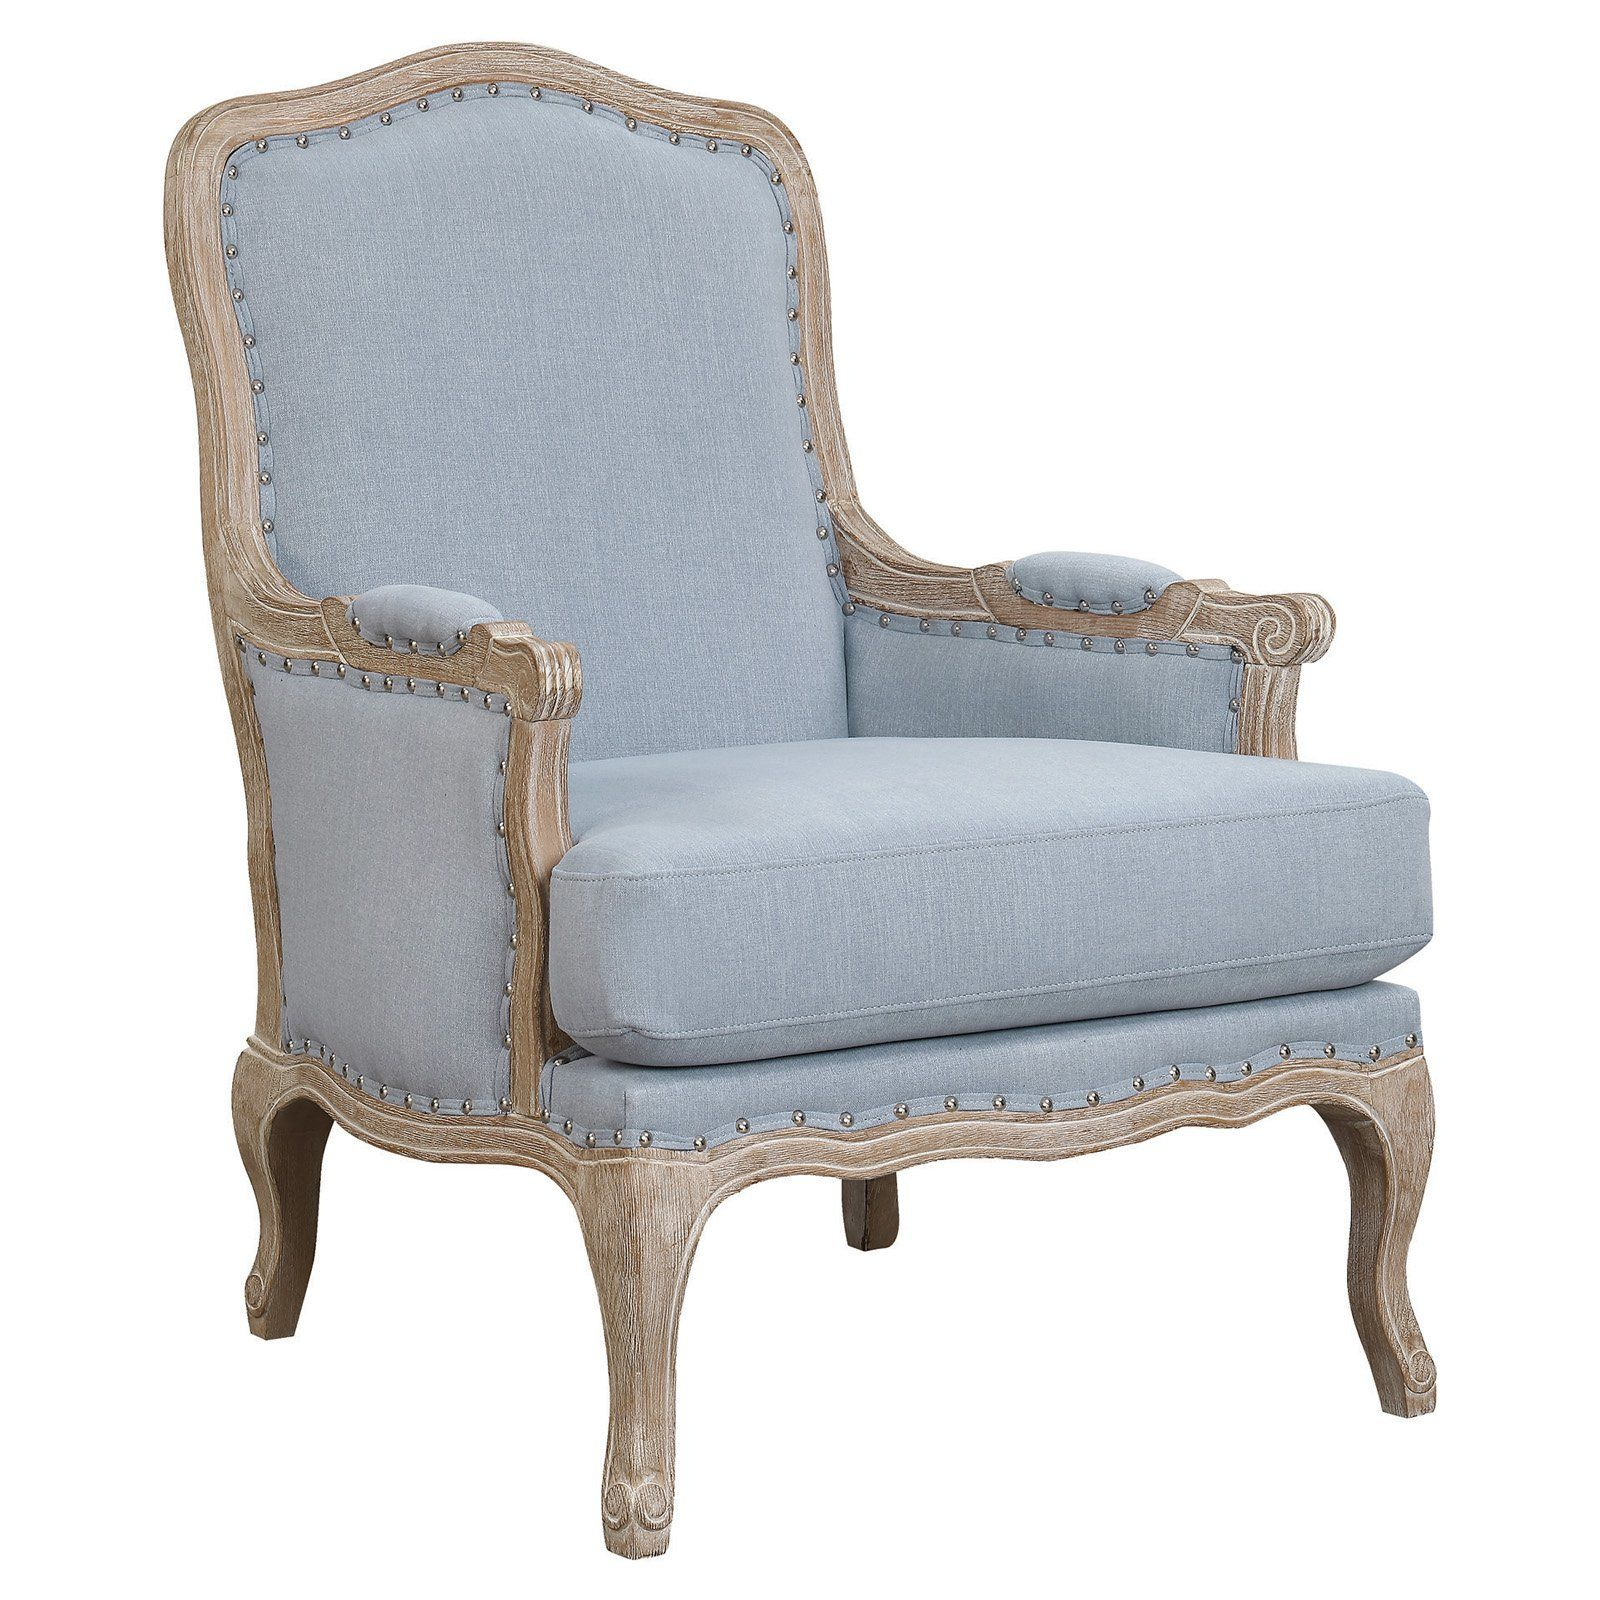 Picket House Furnishings Regal Arm Chair Light Blue in 2019 ...